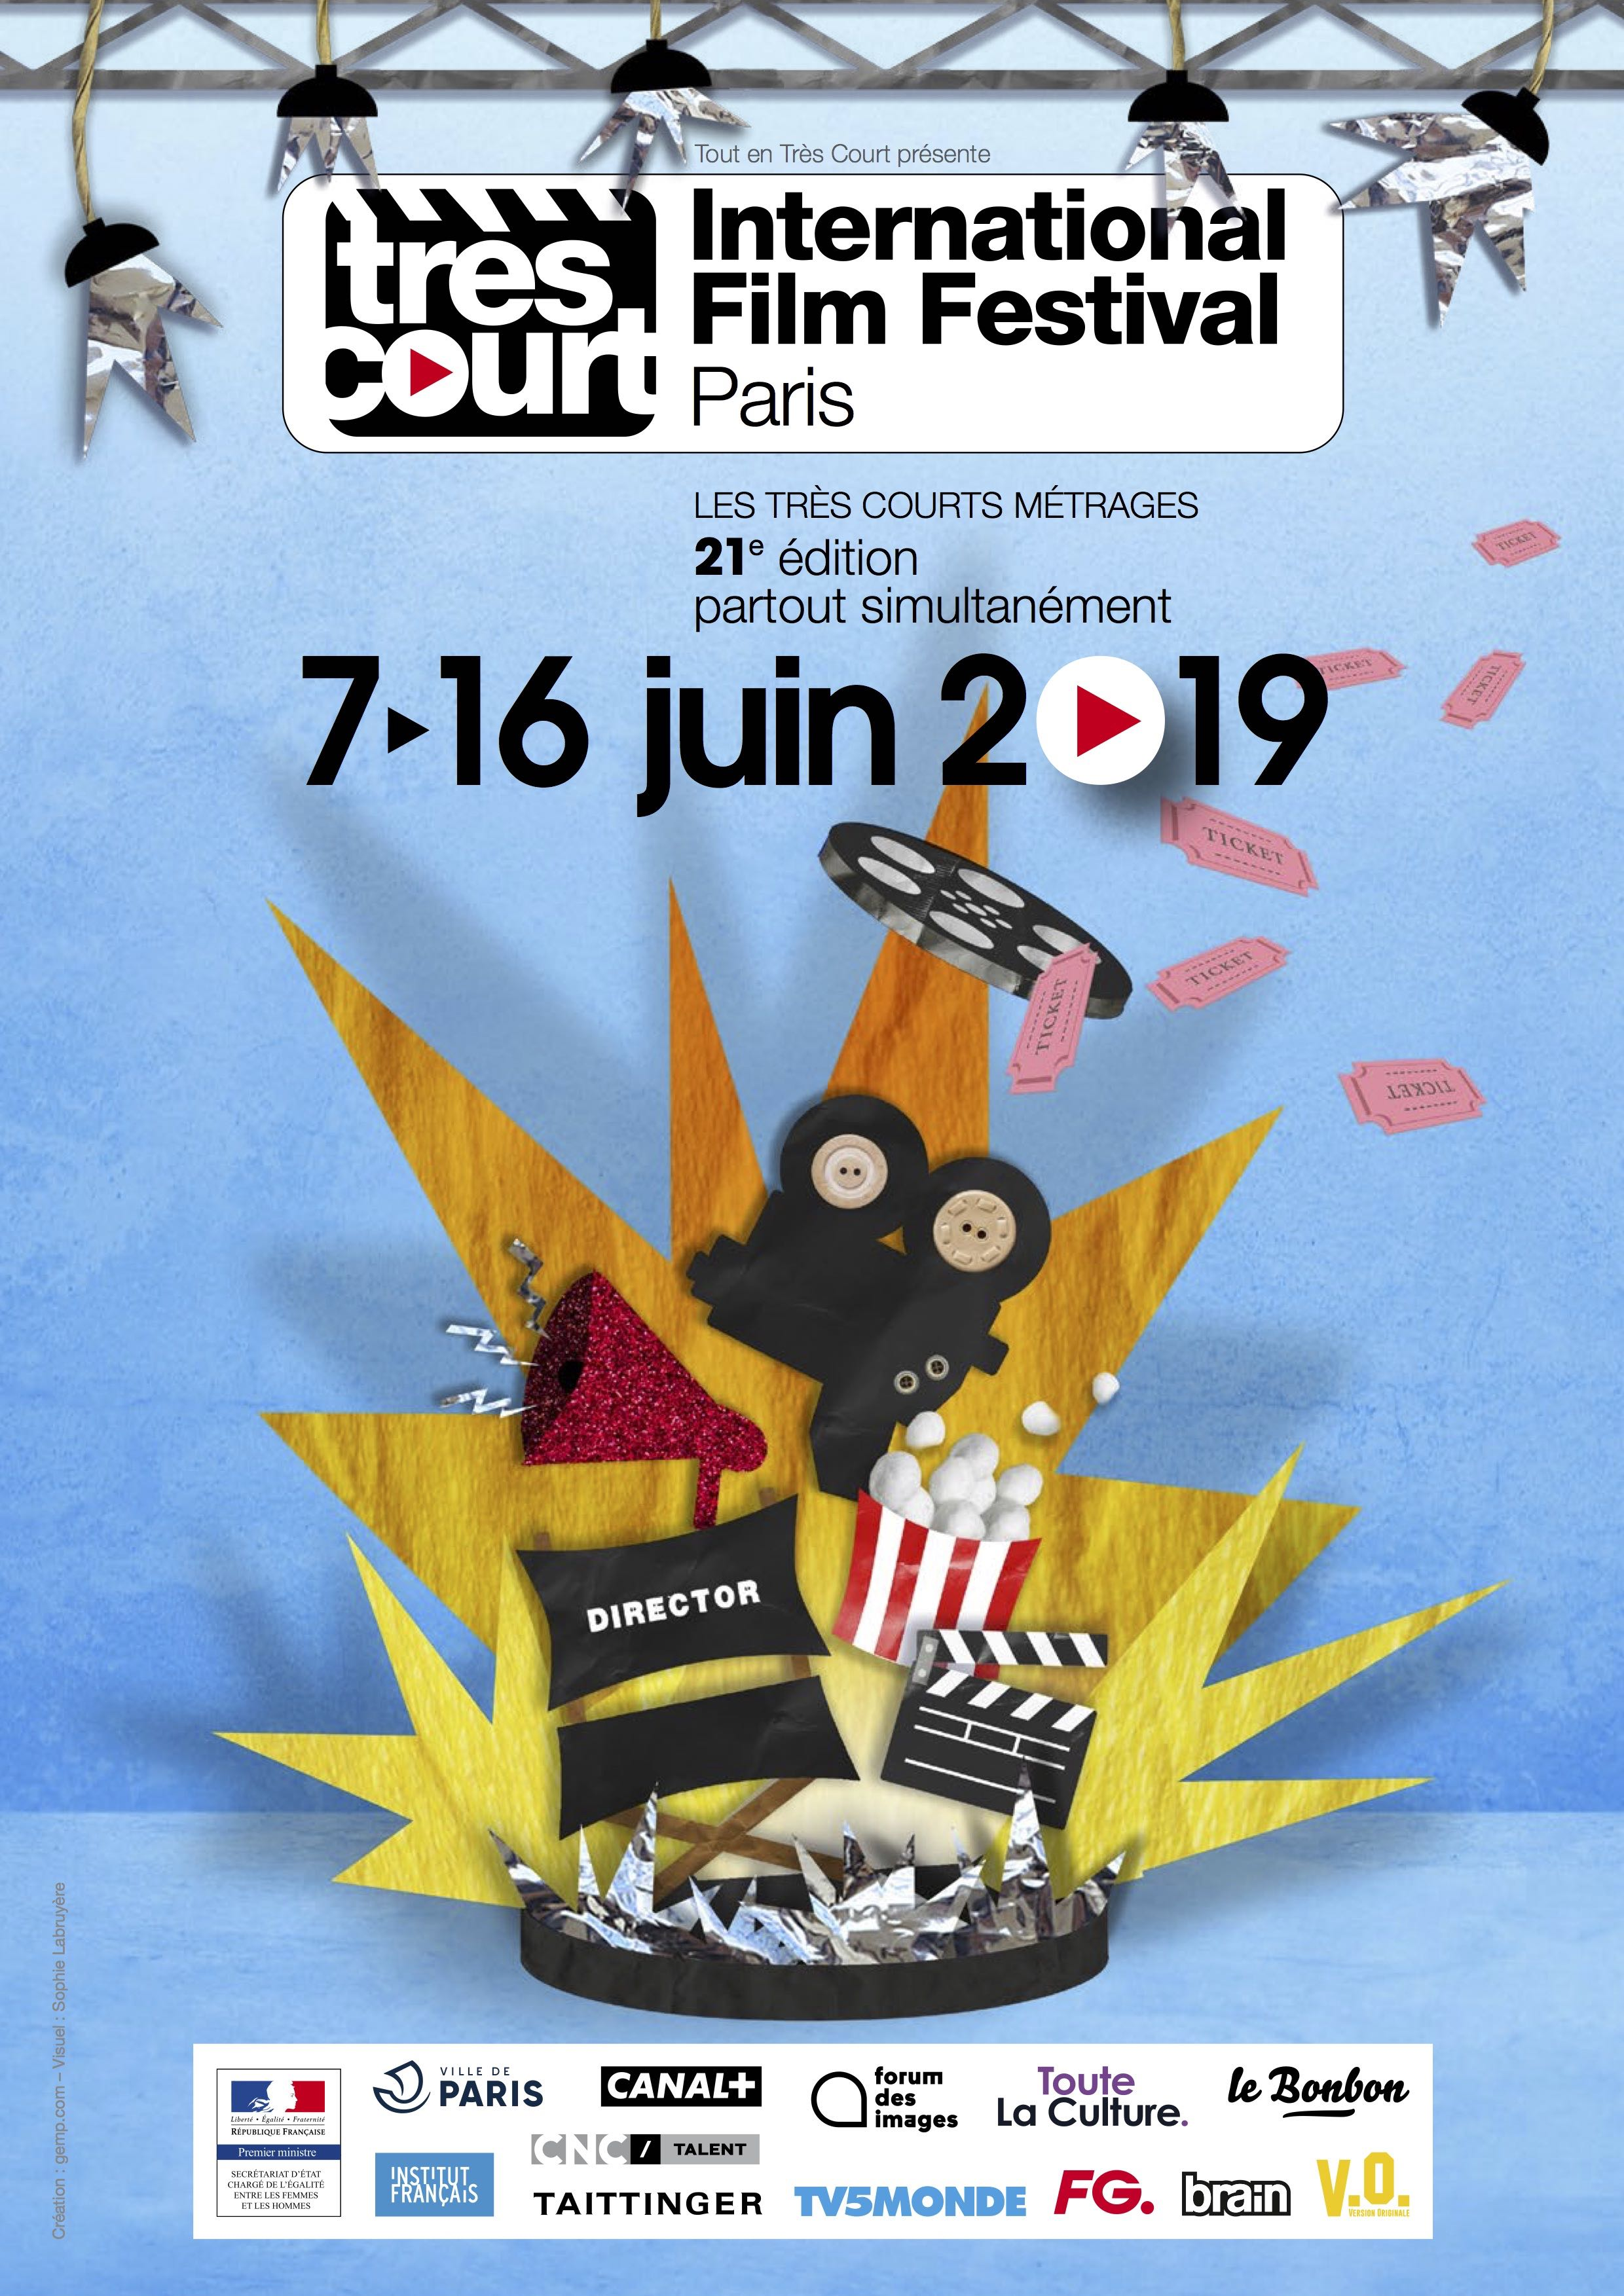 tres court international film festival, cinema, court metrage, climat, environnement, forum des images, paroles de femmes